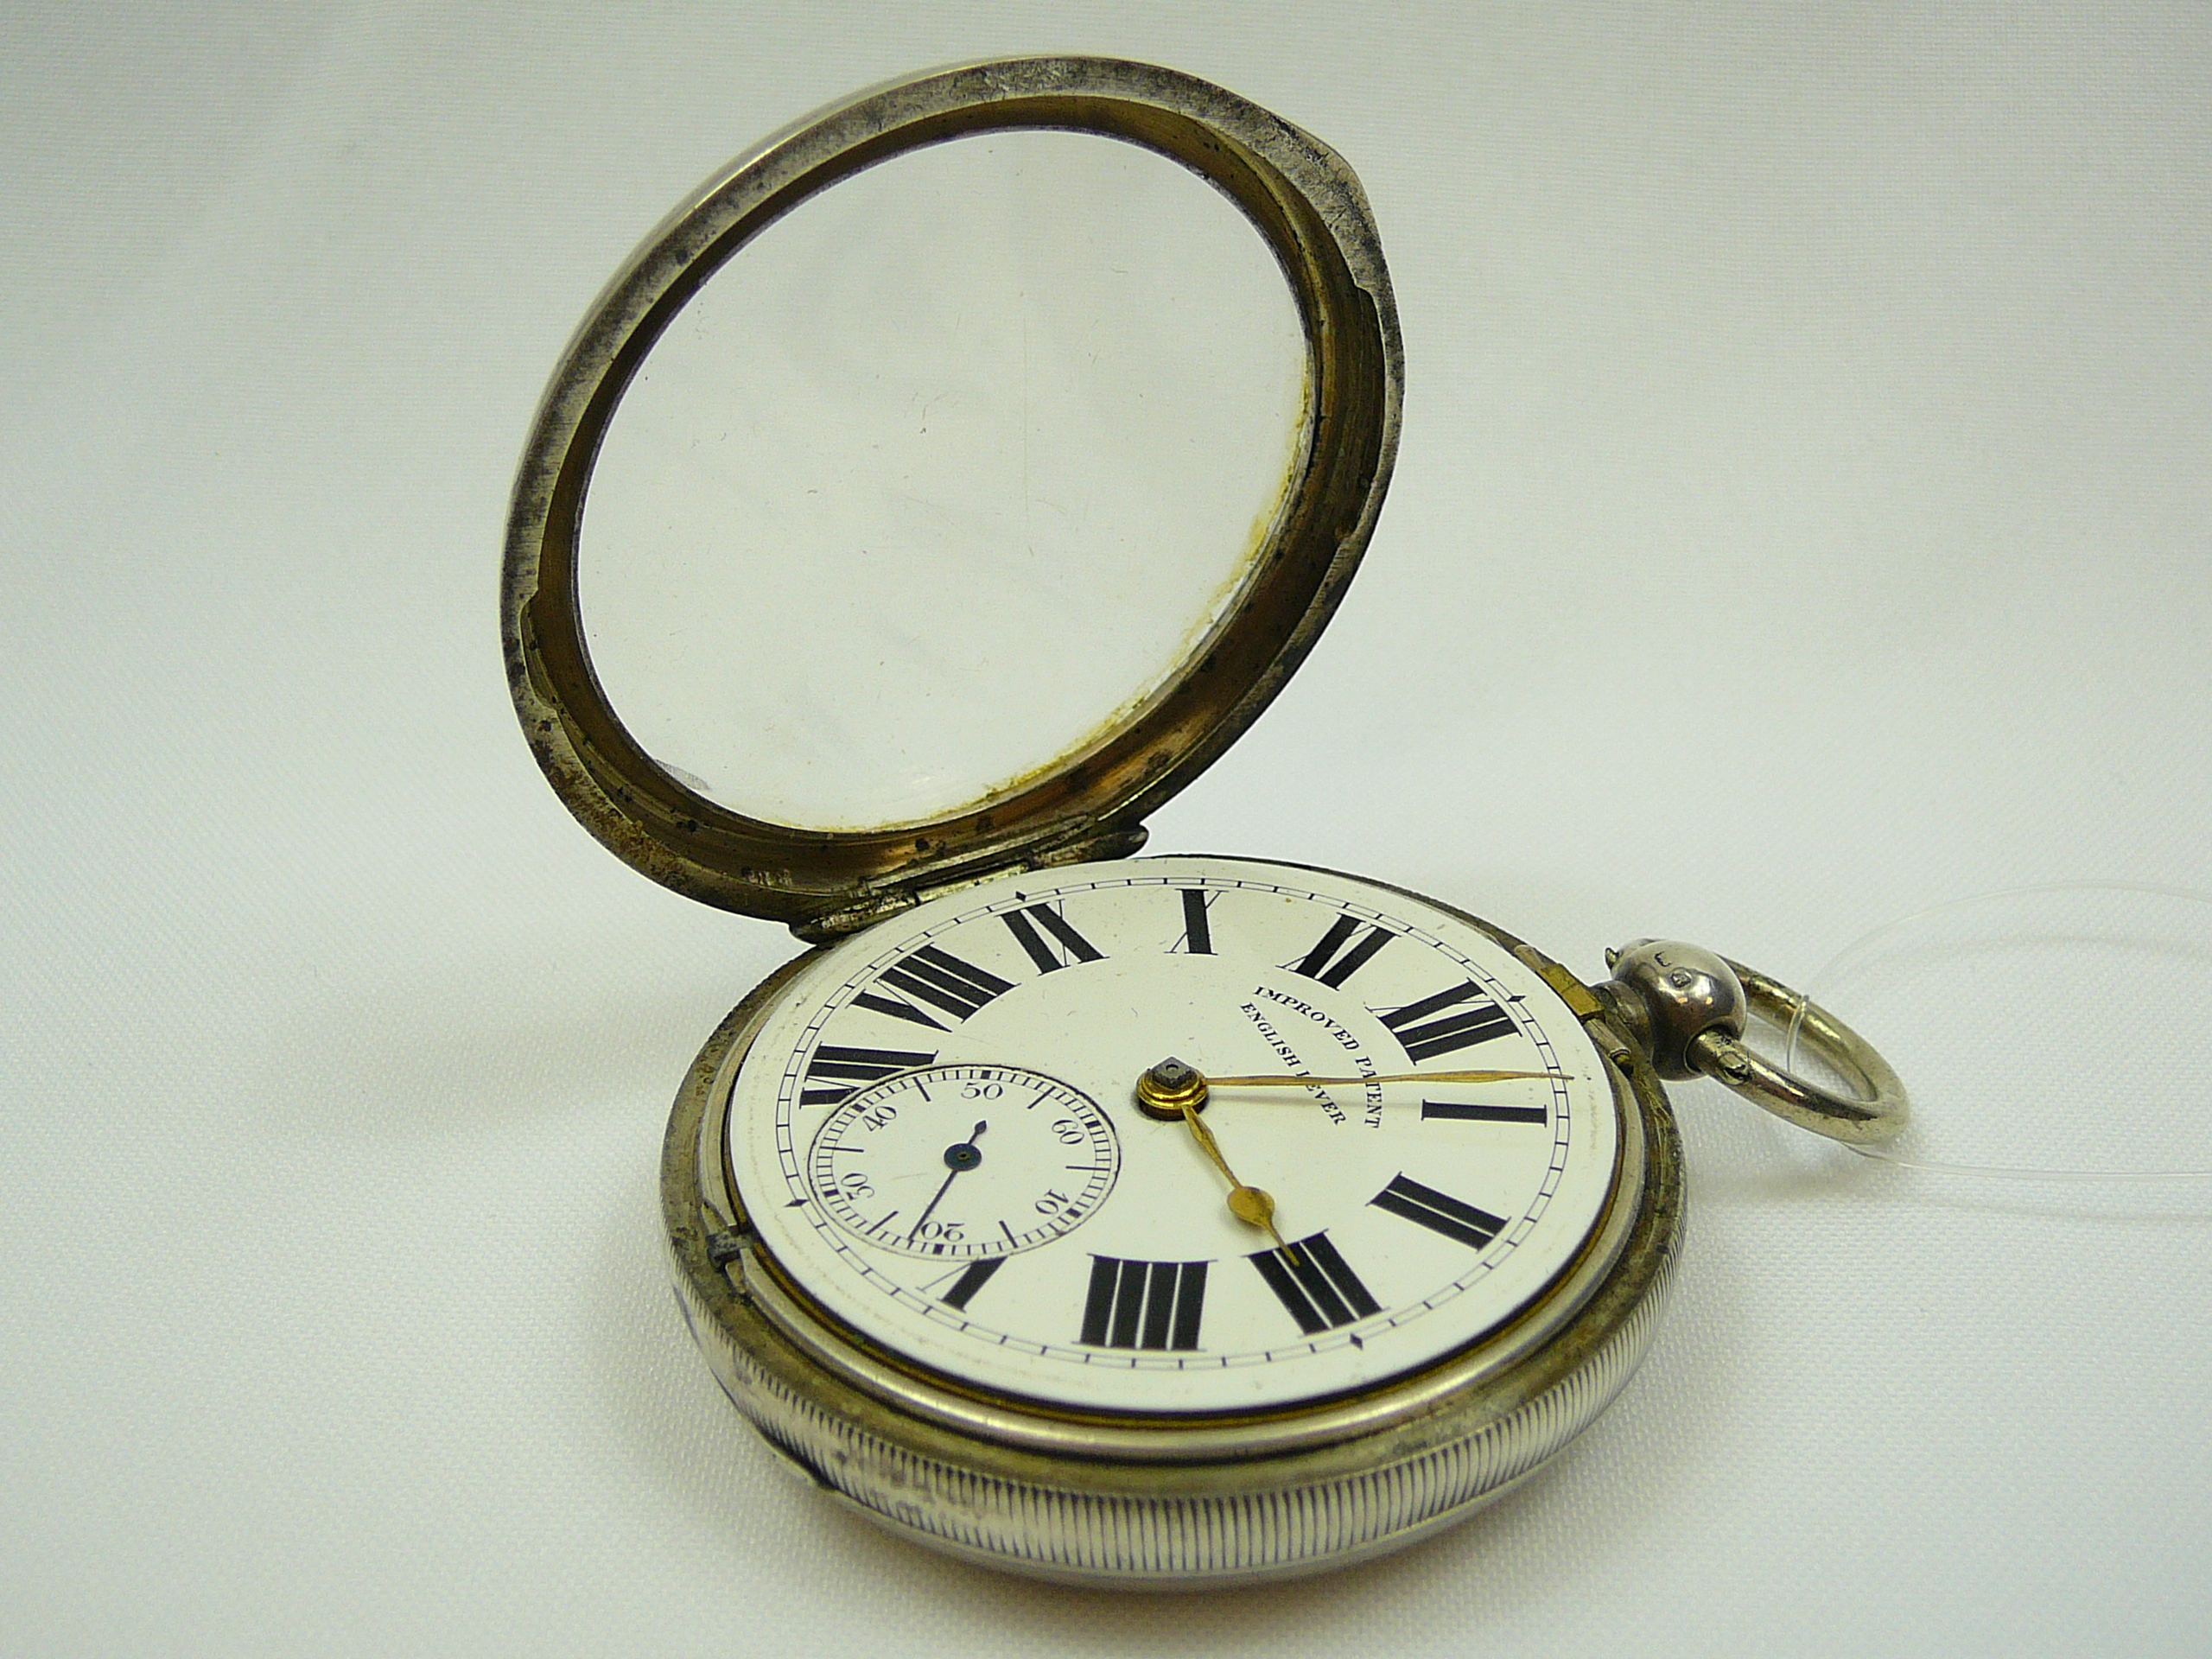 Gents Silver Pocket Watch - Image 3 of 4